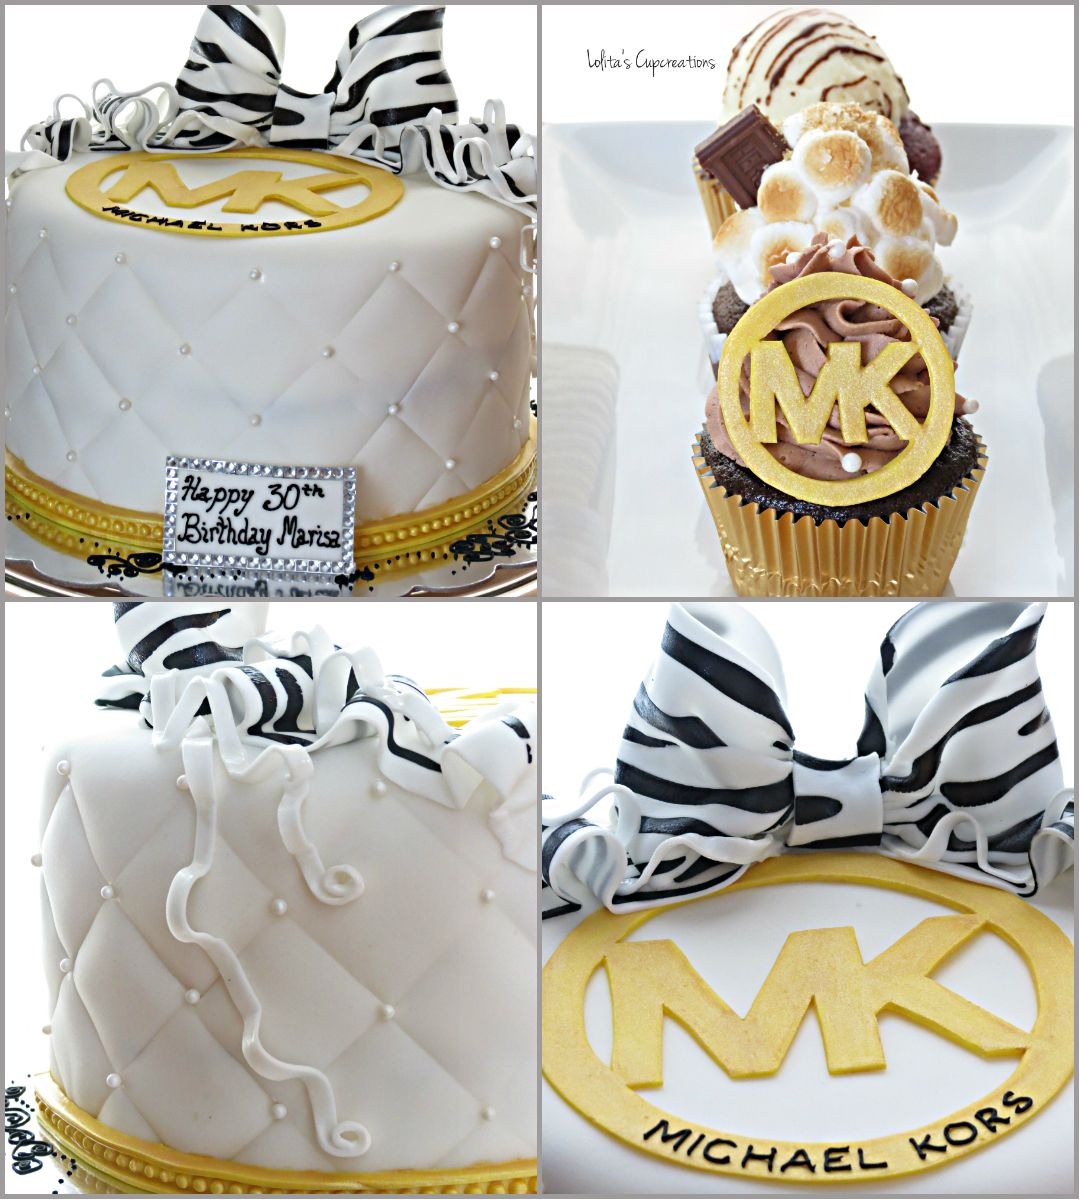 Michaels Cake Decorating Toppers : Michael Kors Inspired Cake and Cupcakes Oven ...